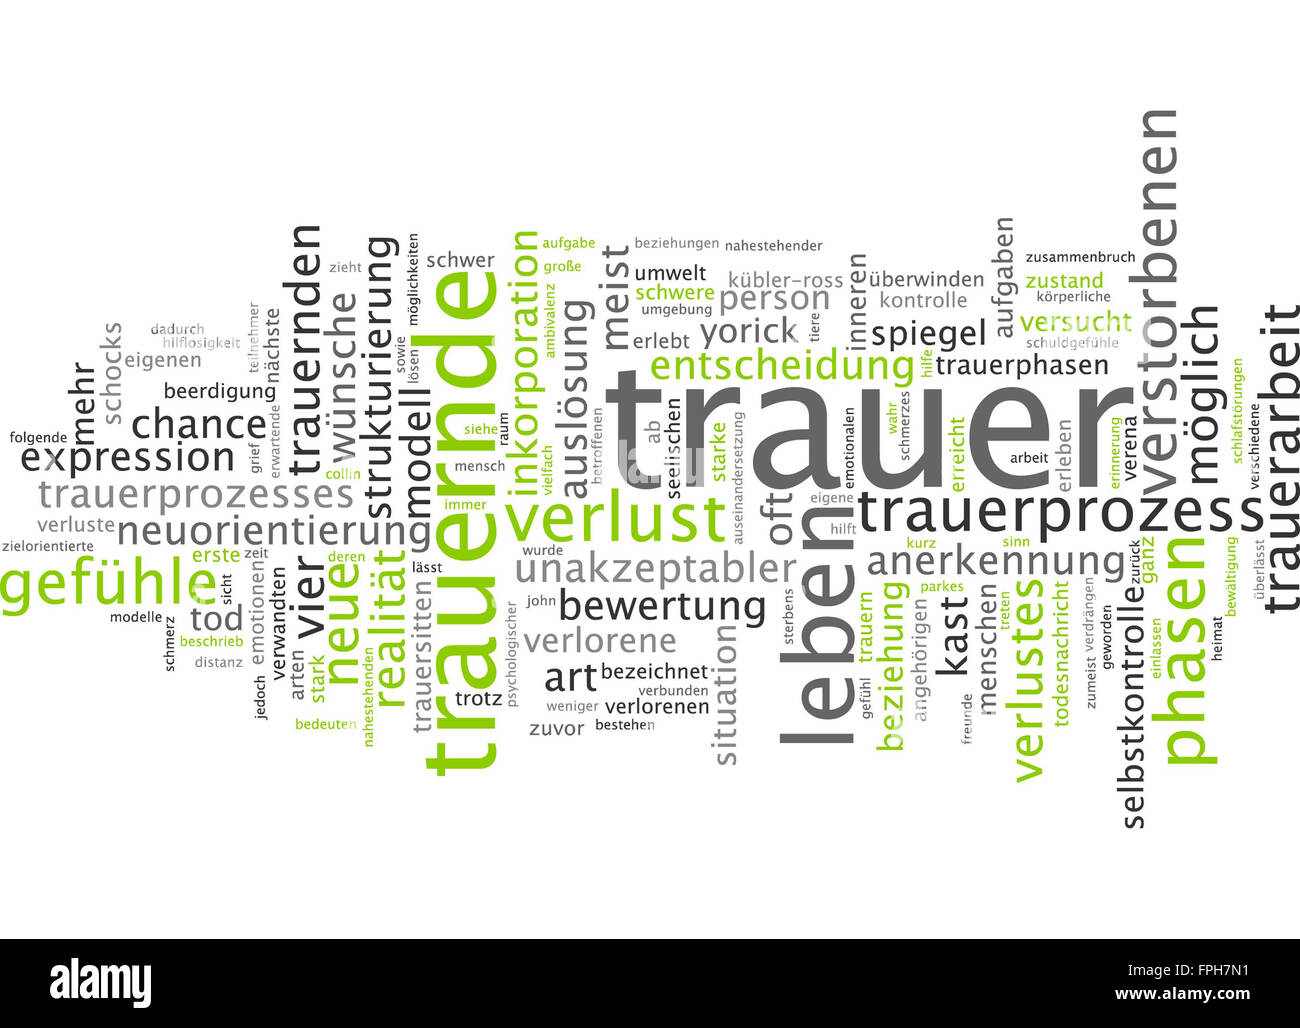 Trauerphase Stock Photos Trauerphase Stock Images Alamy